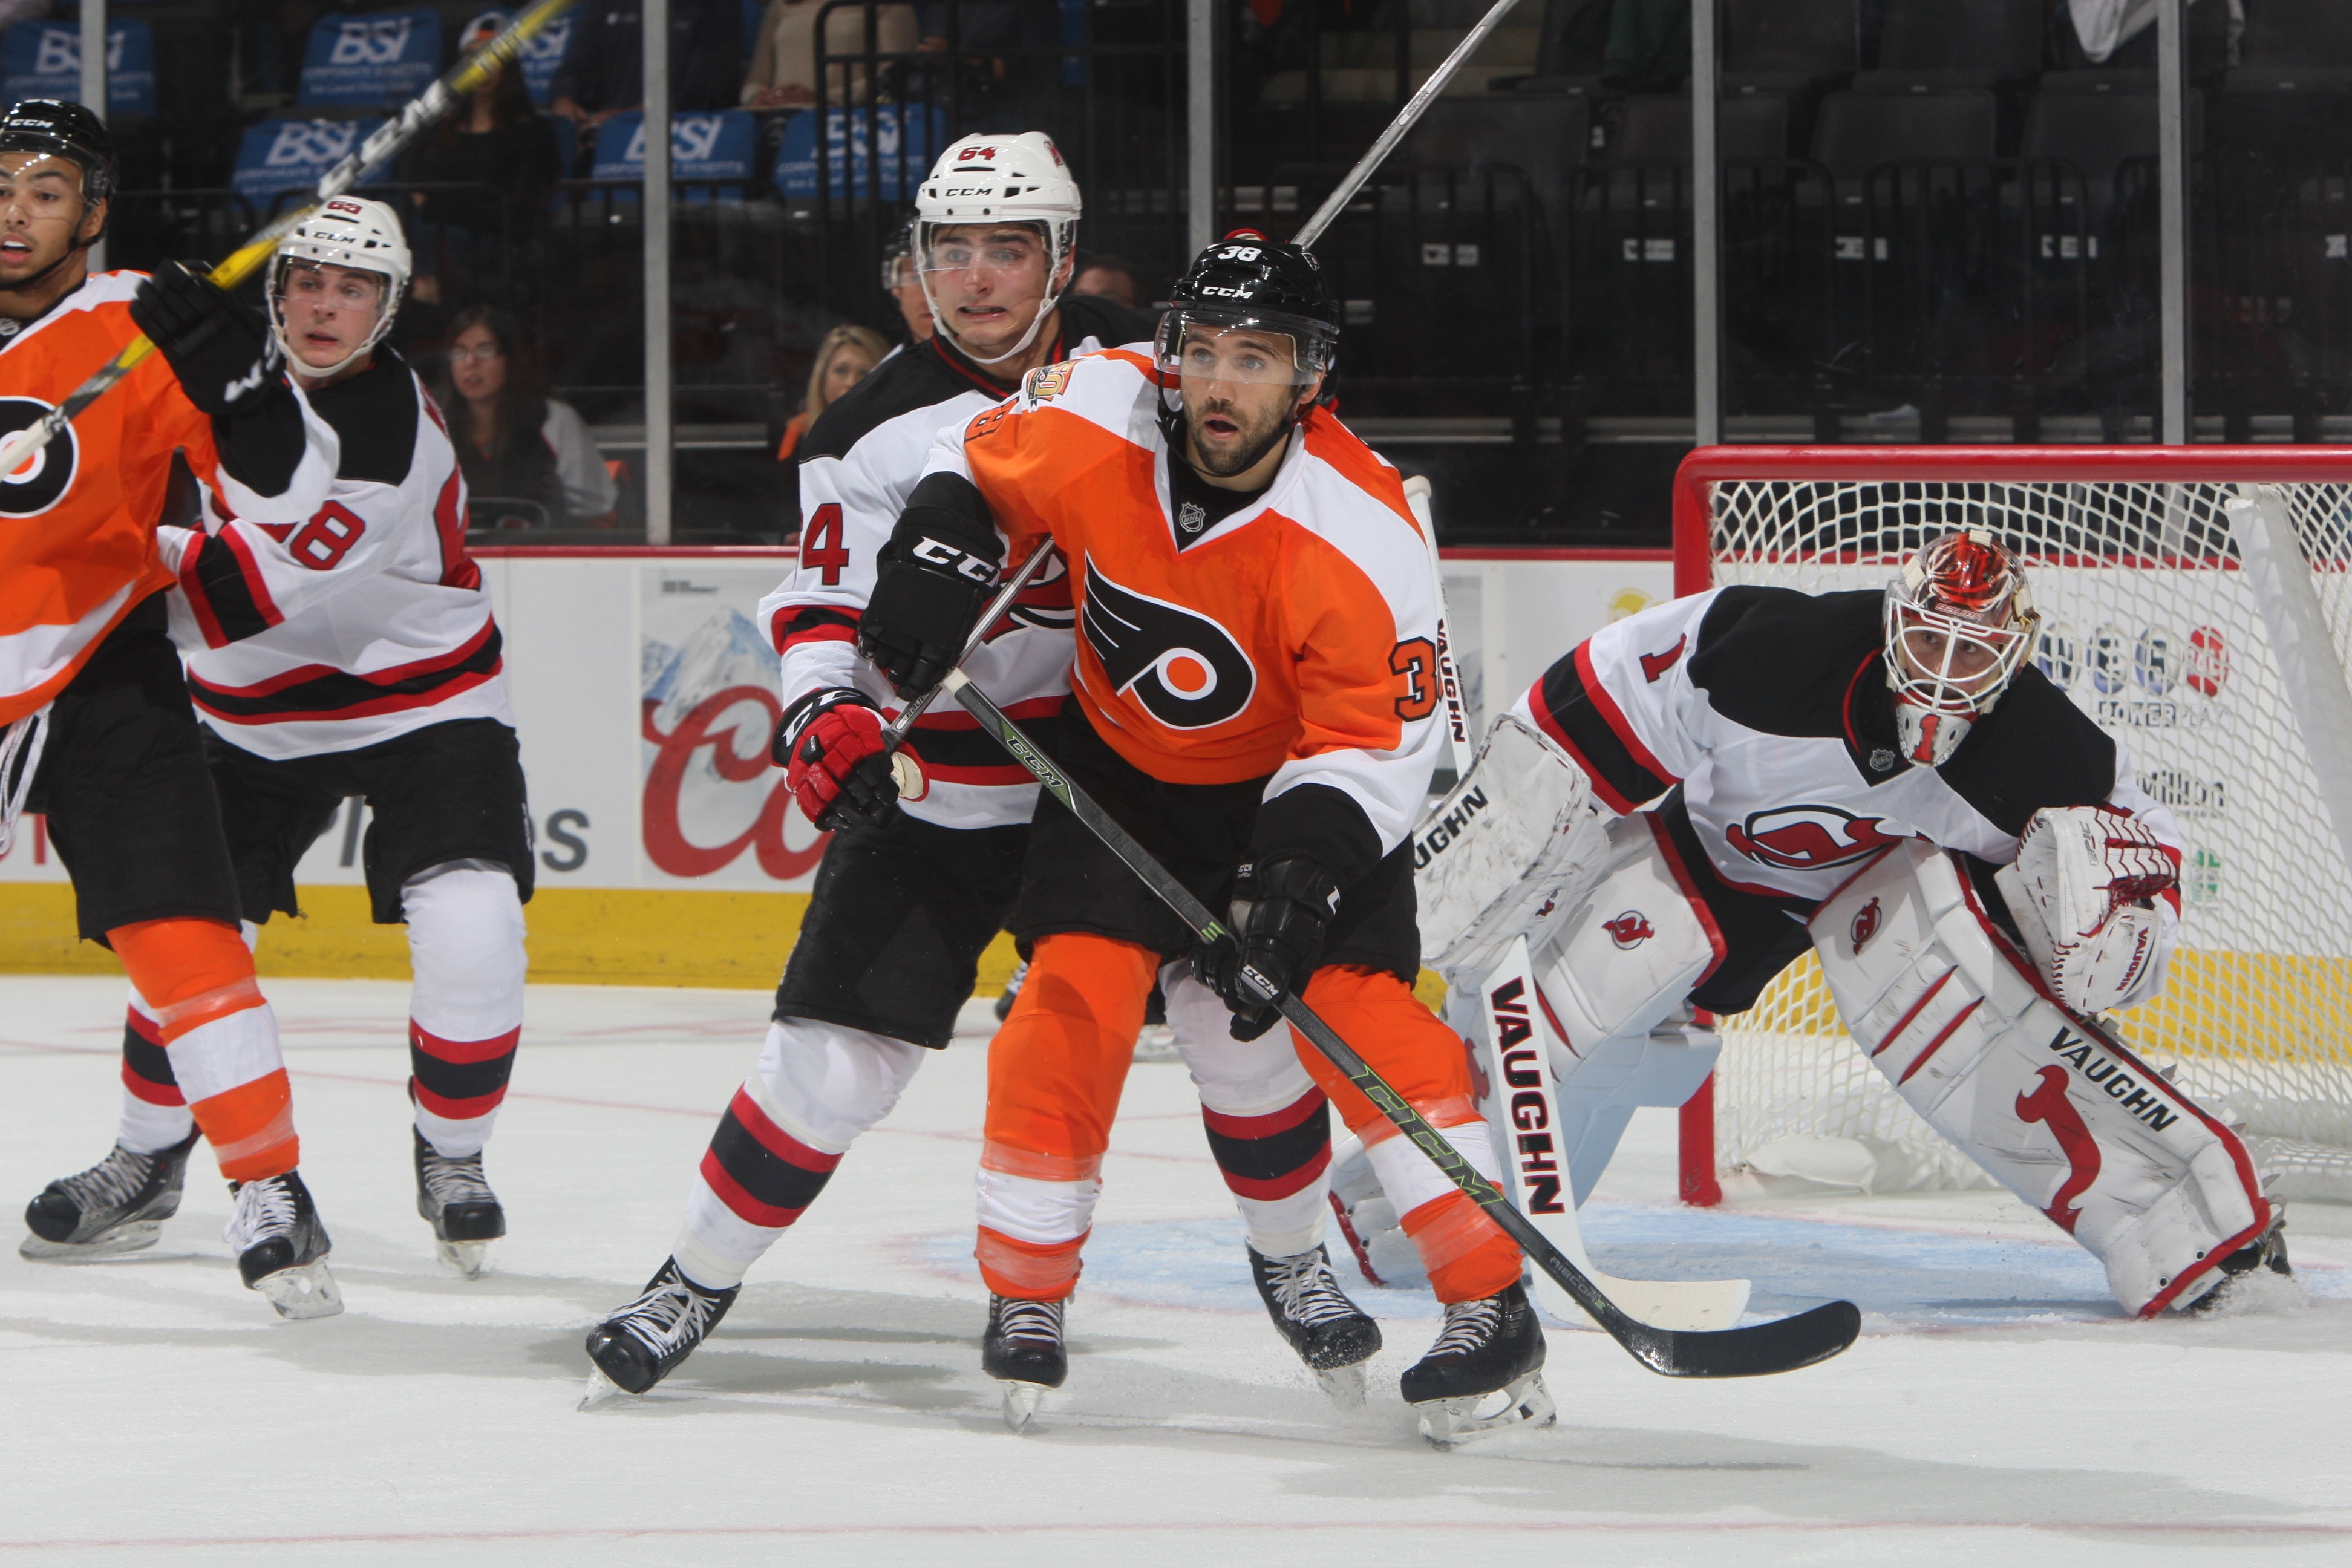 Flyers Down Devils 2-0 as Hockey Returns to PPL Center